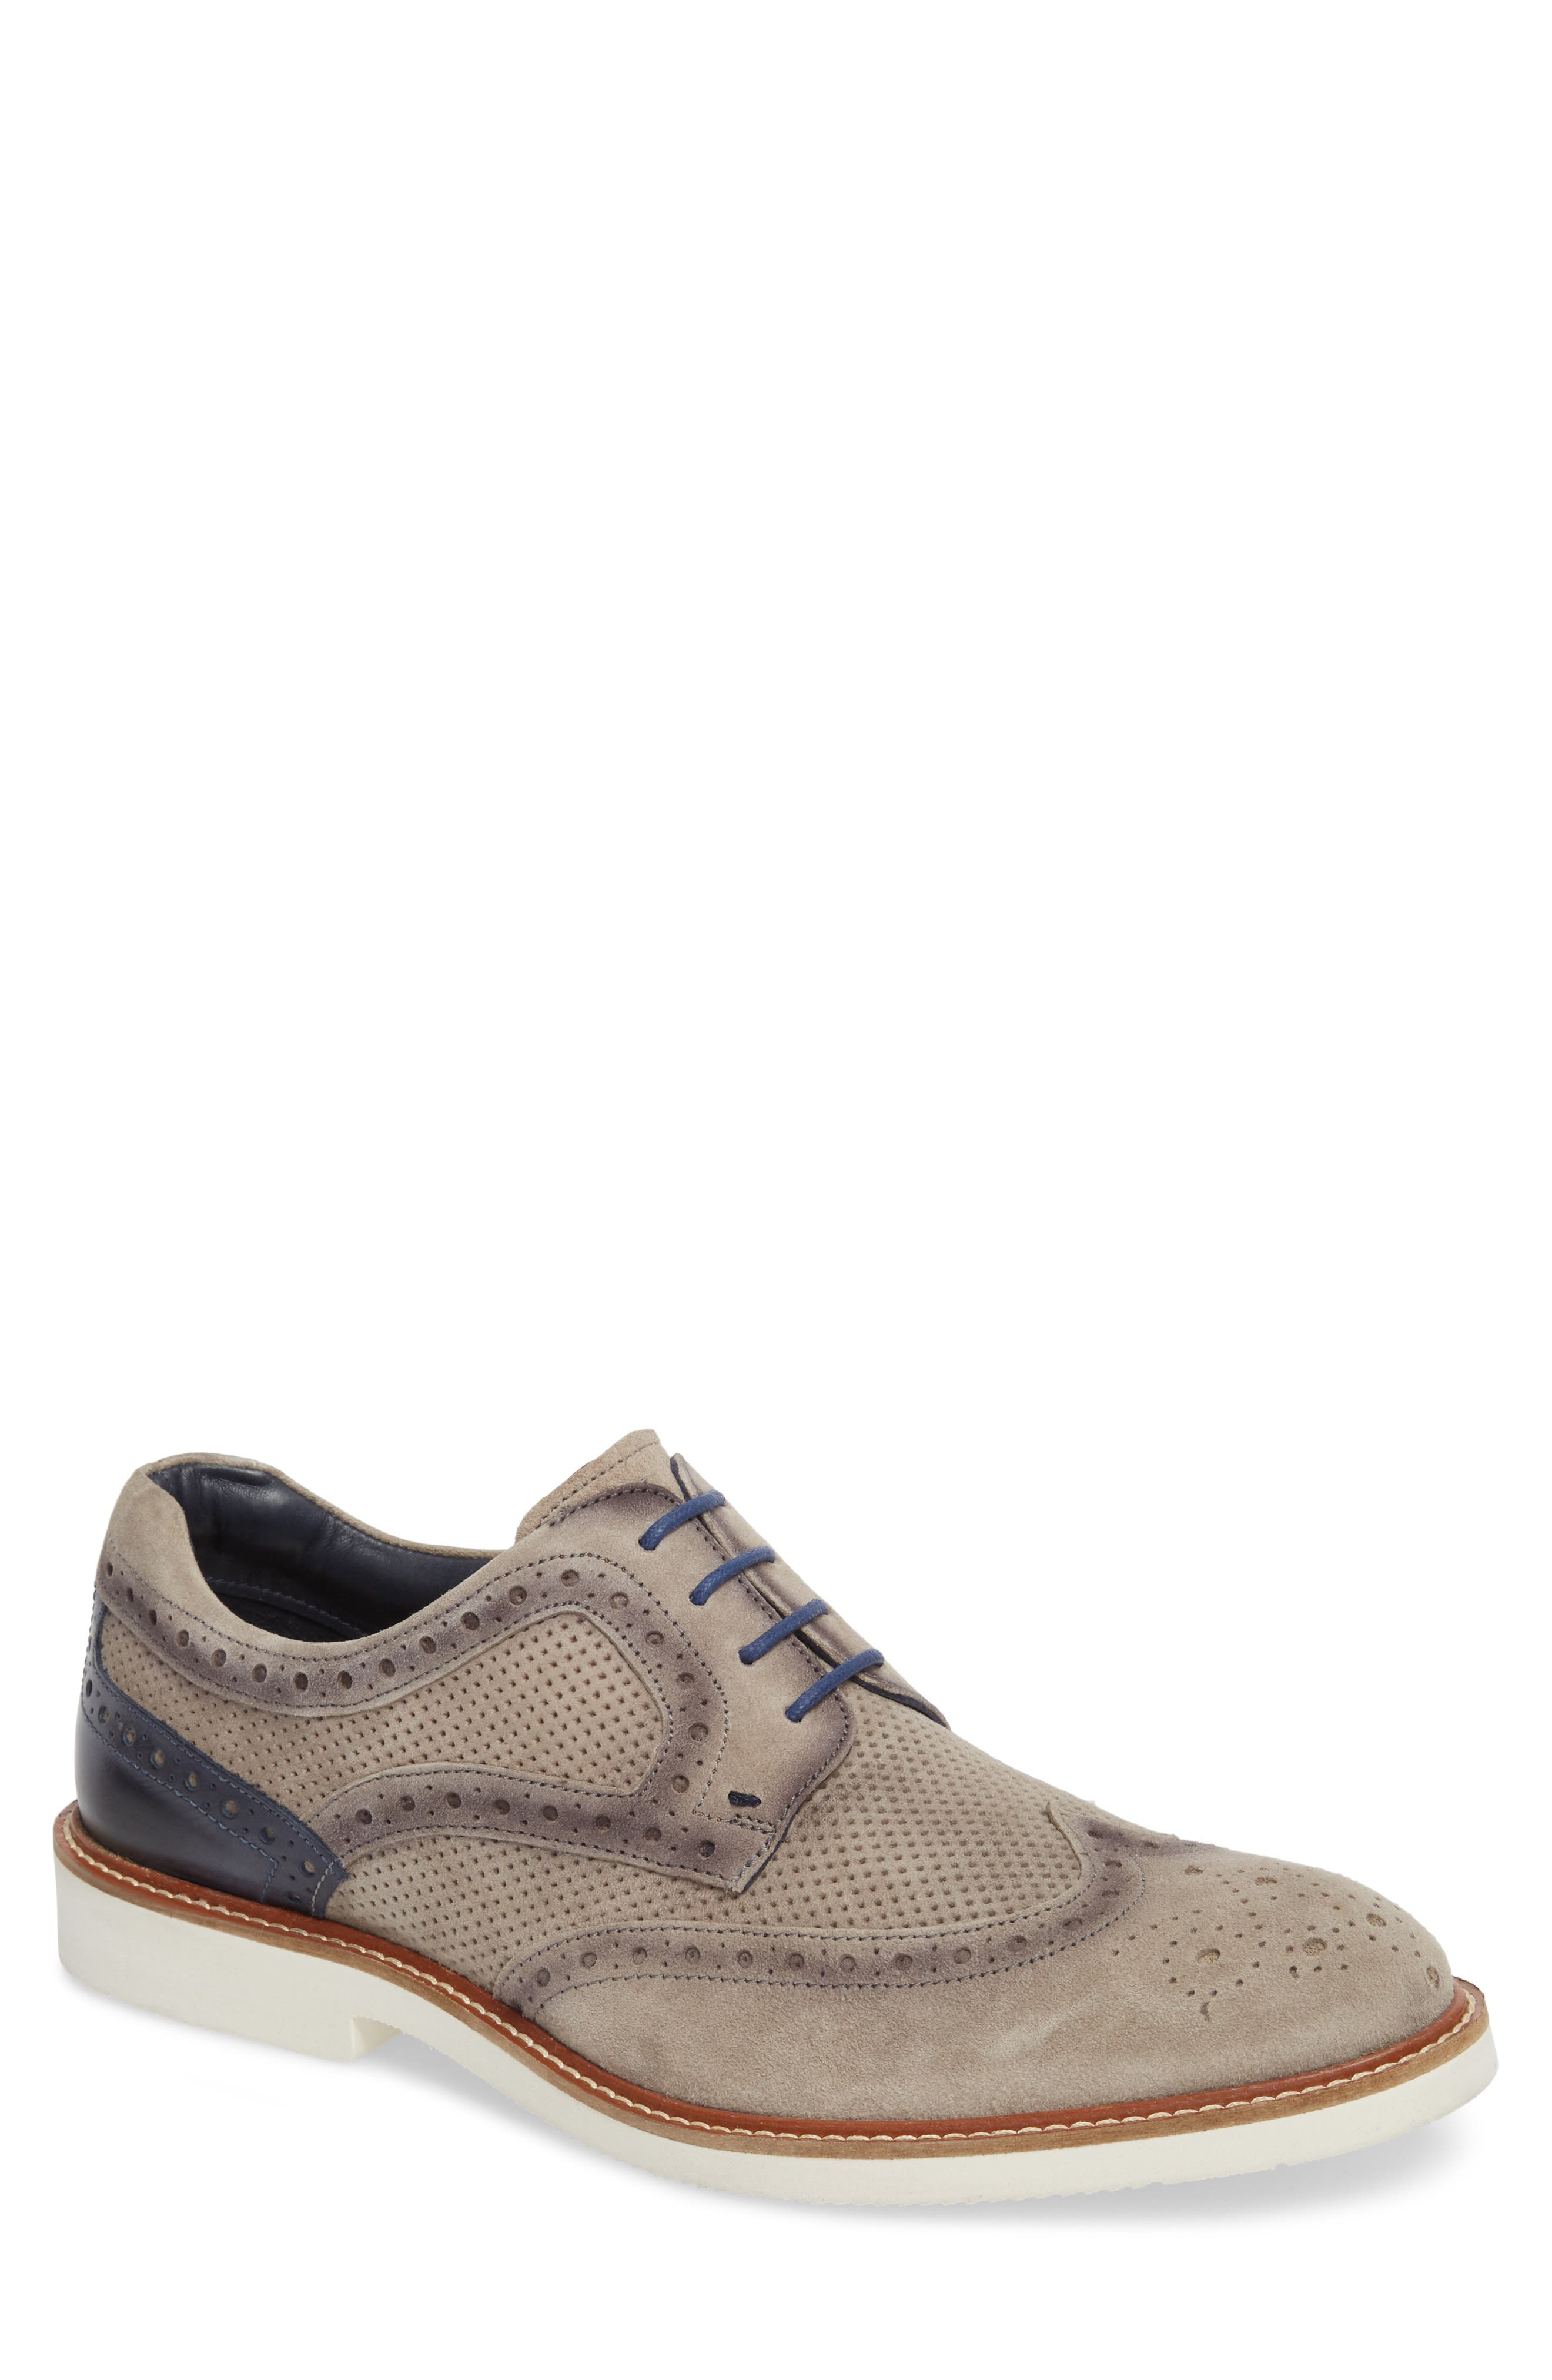 Shaw Perforated Wingtip Derby,                             Main thumbnail 1, color,